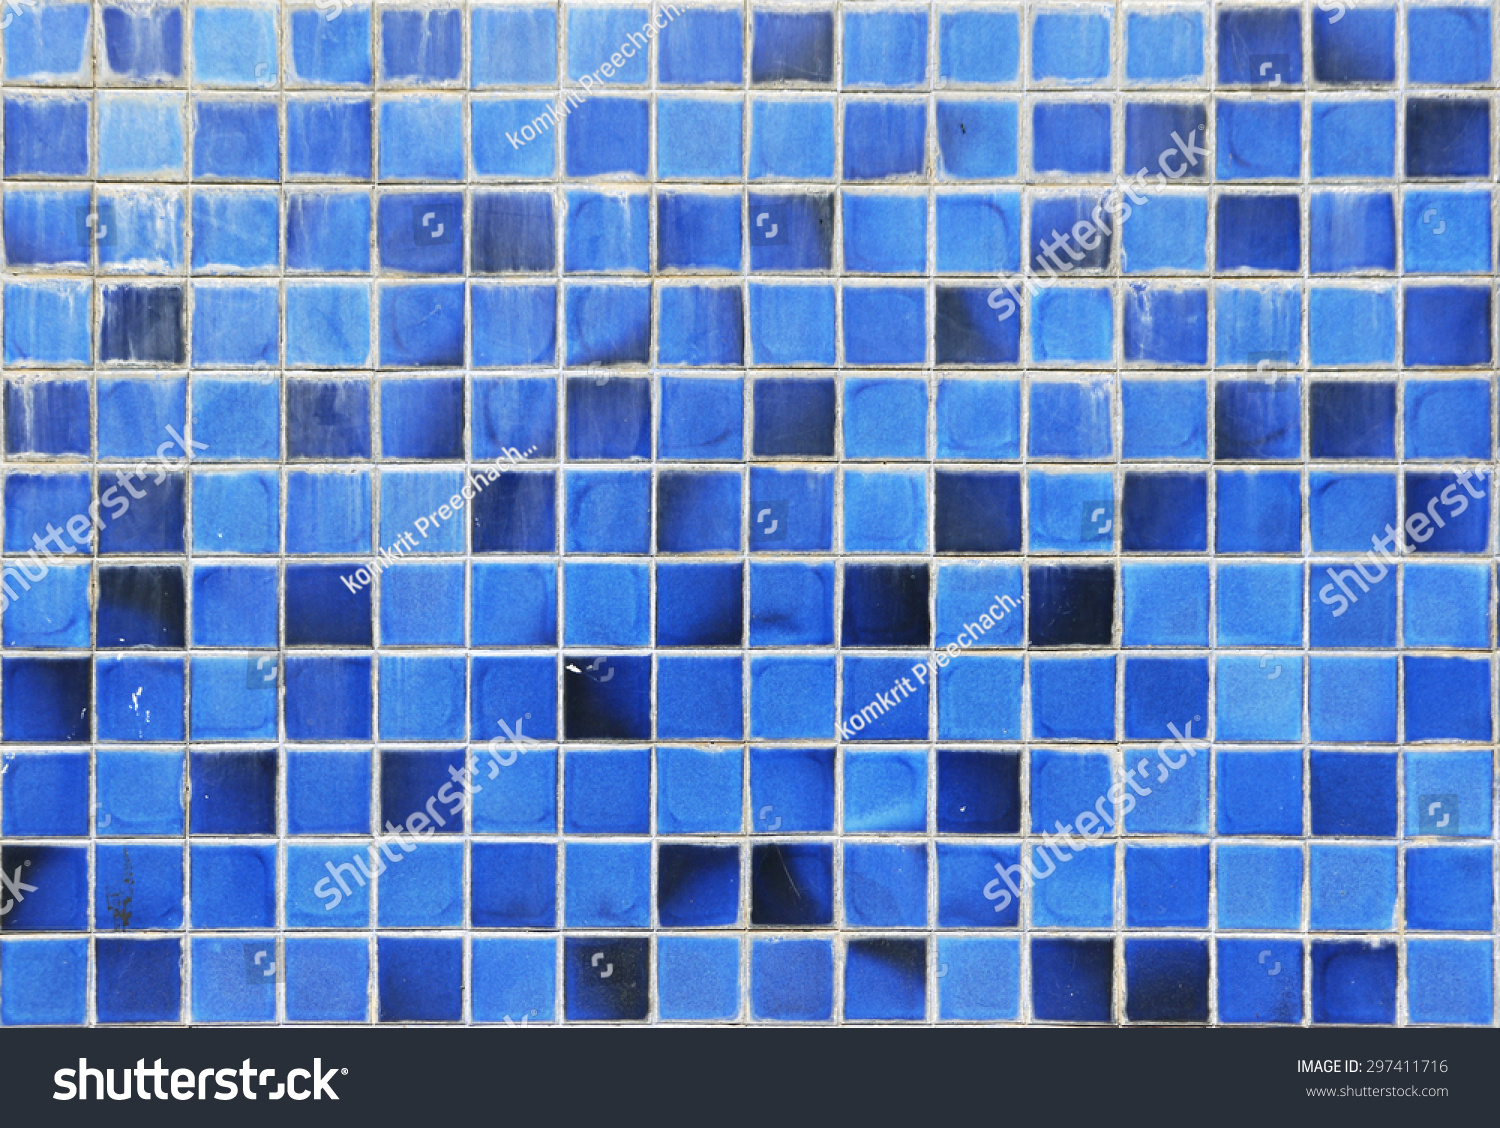 Old Blue Ceramic Wall Tiles Background Stock Photo (Edit Now ...